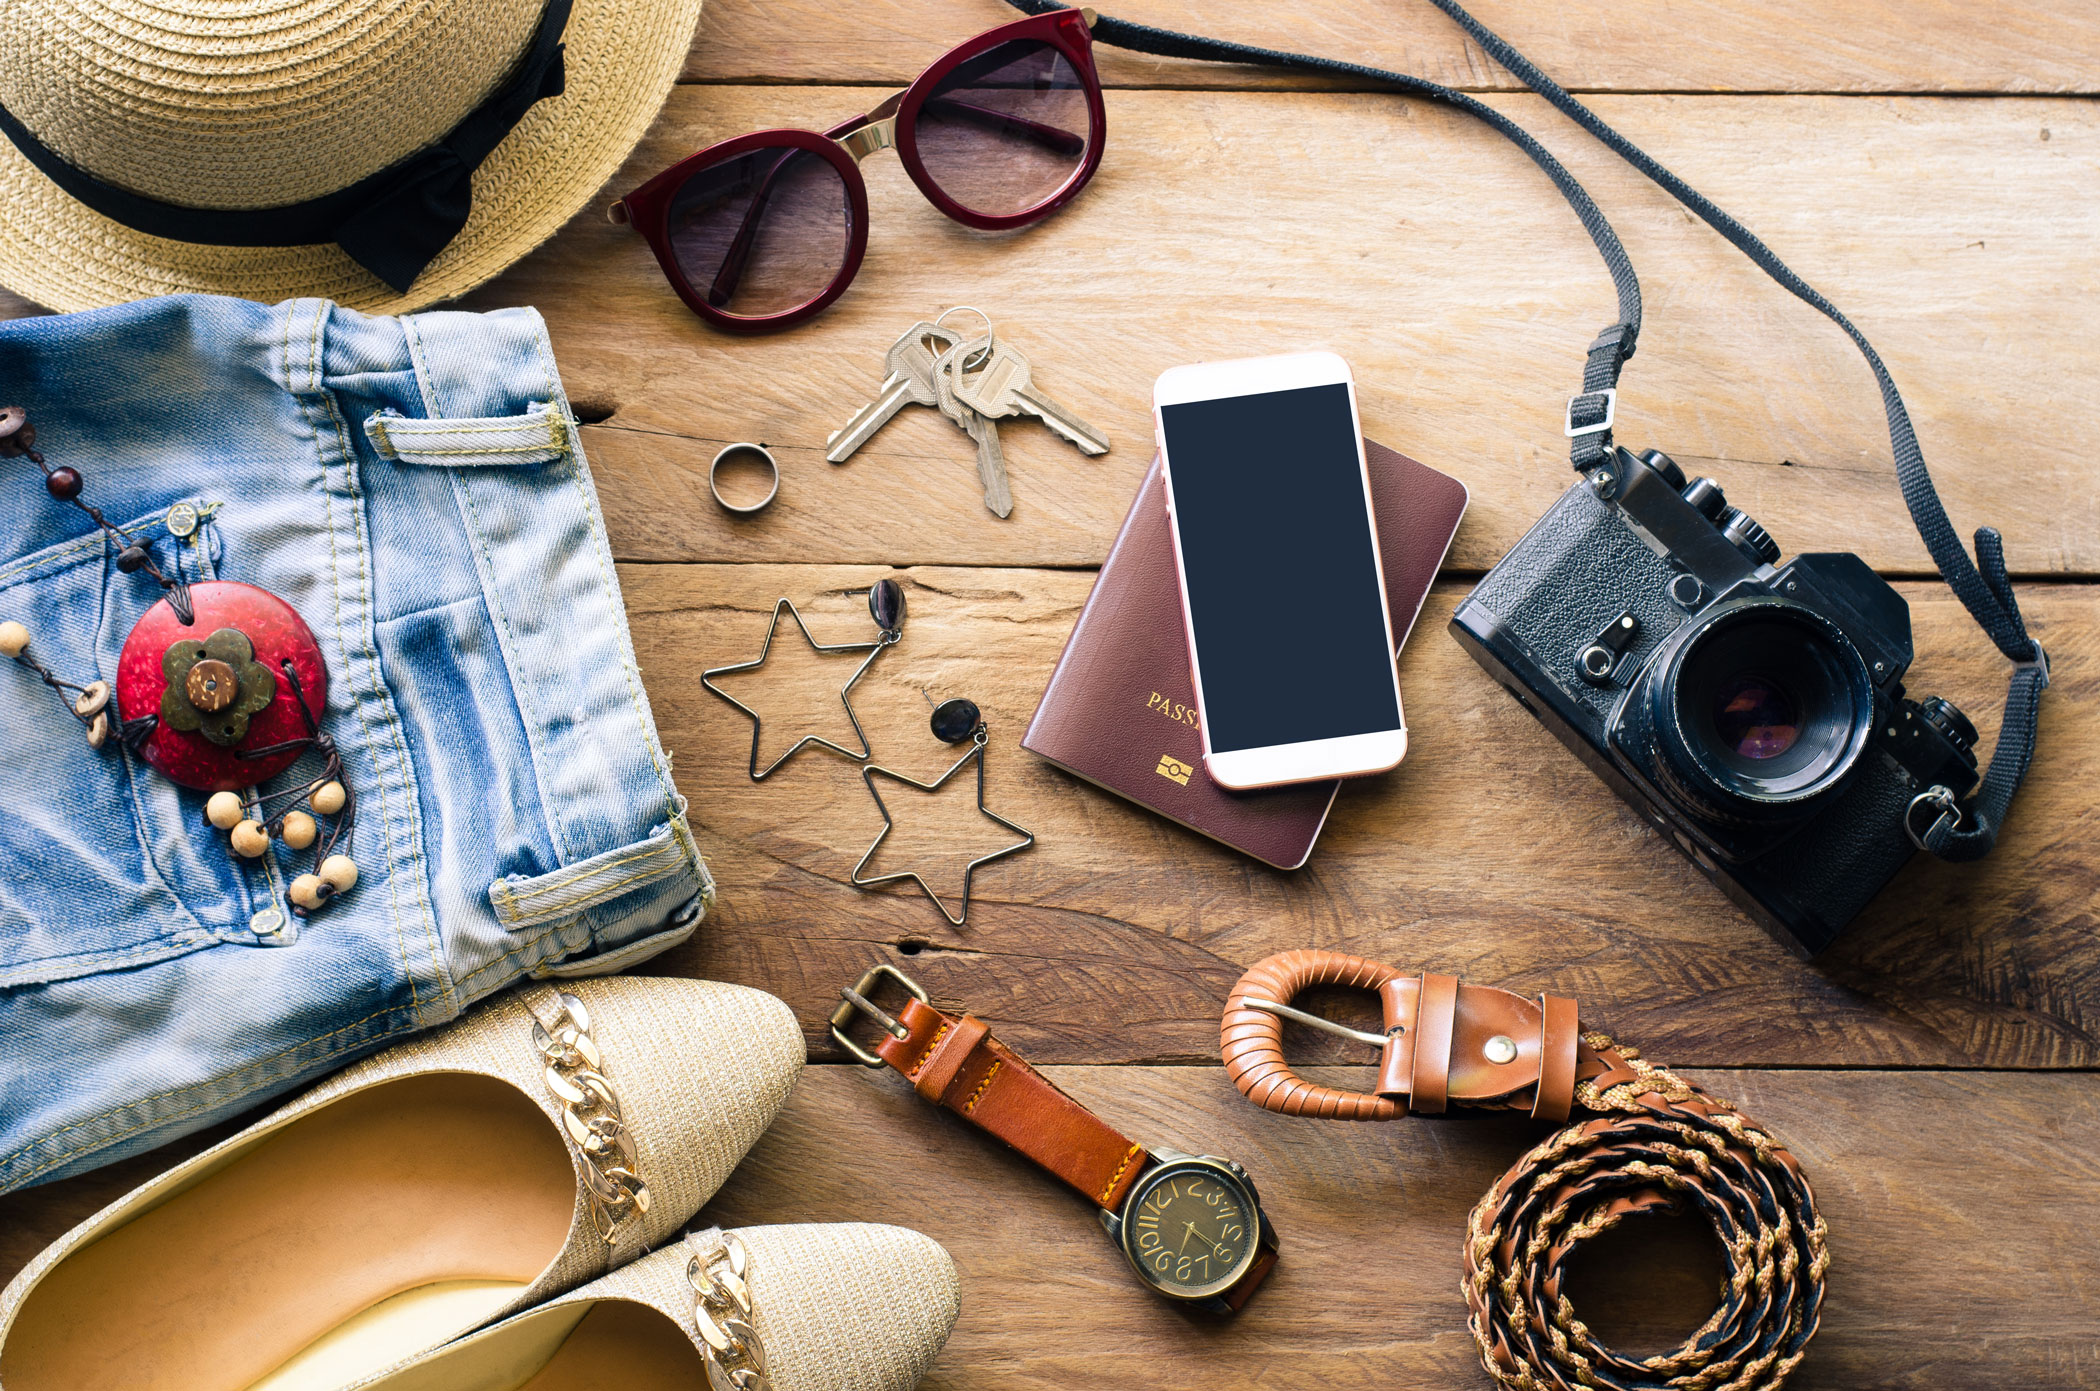 travel items on a table